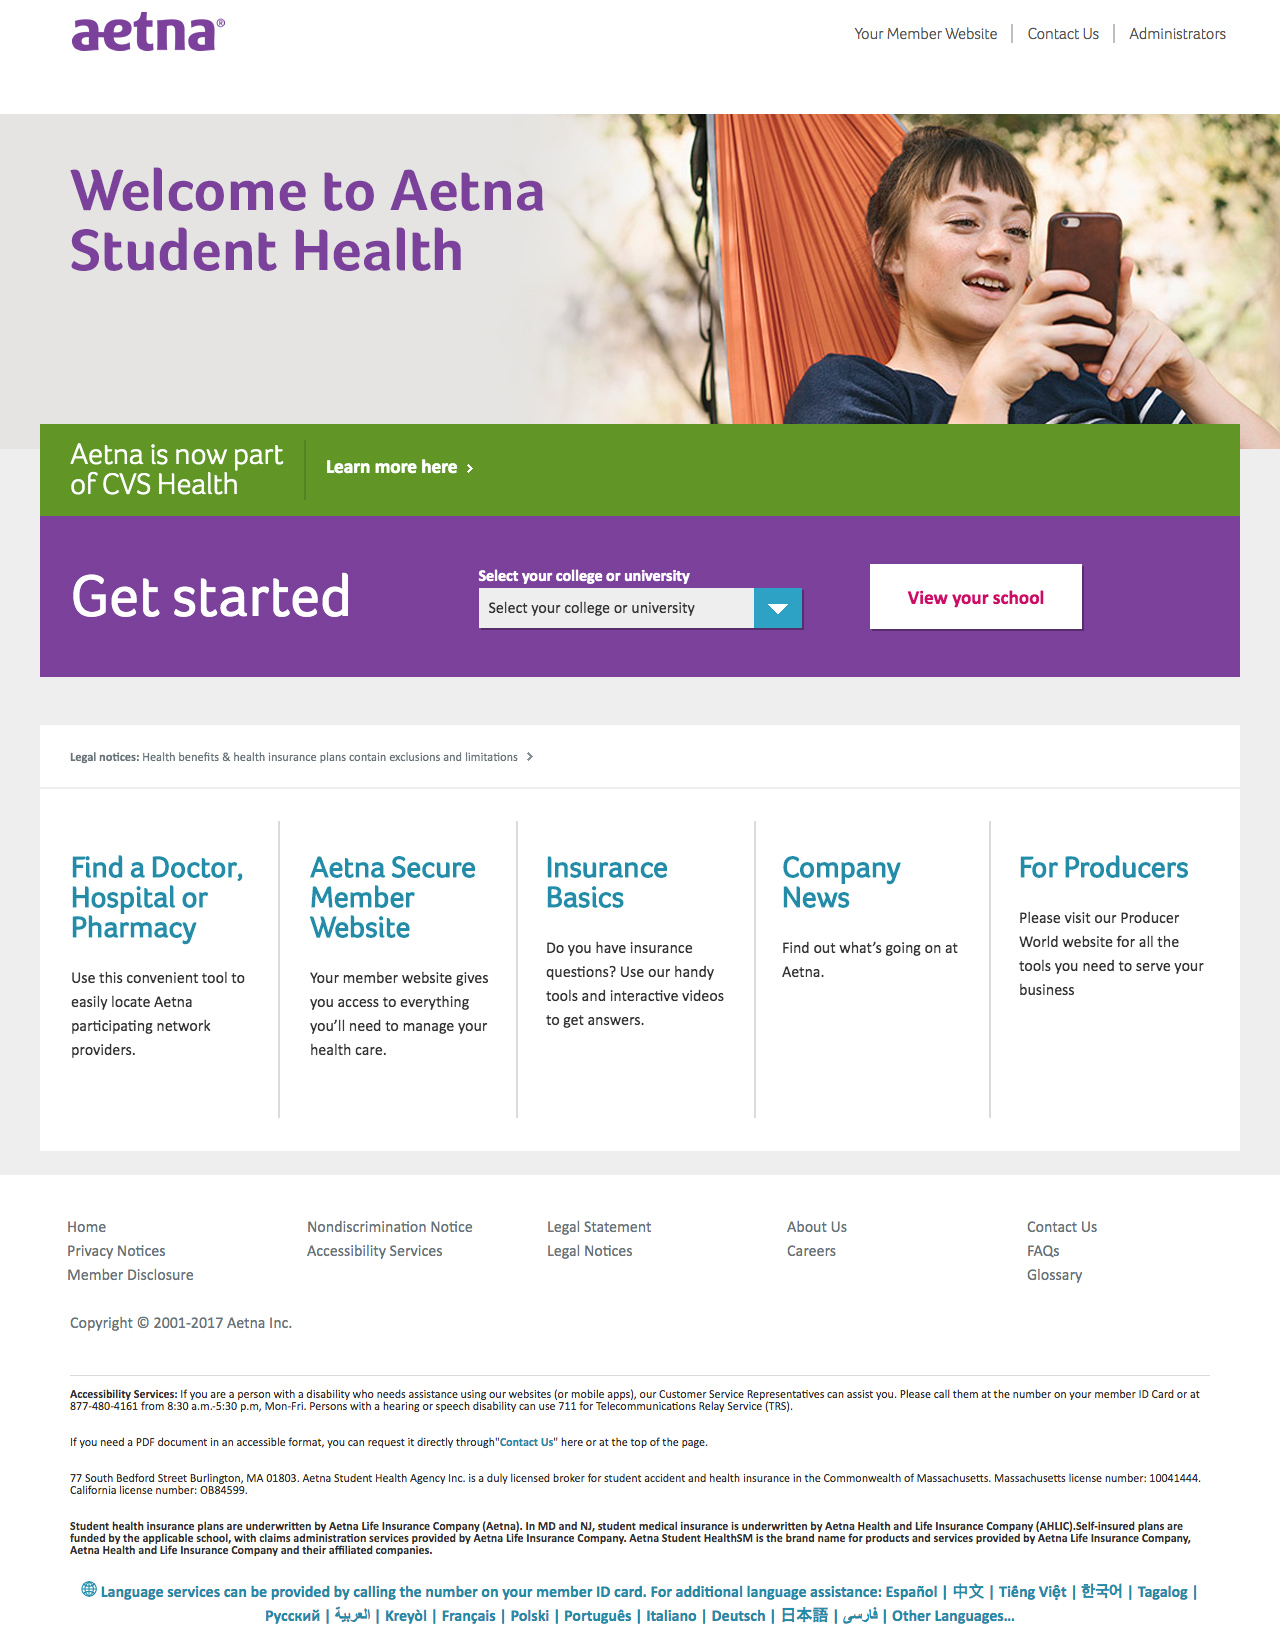 Aetna Student Health pages